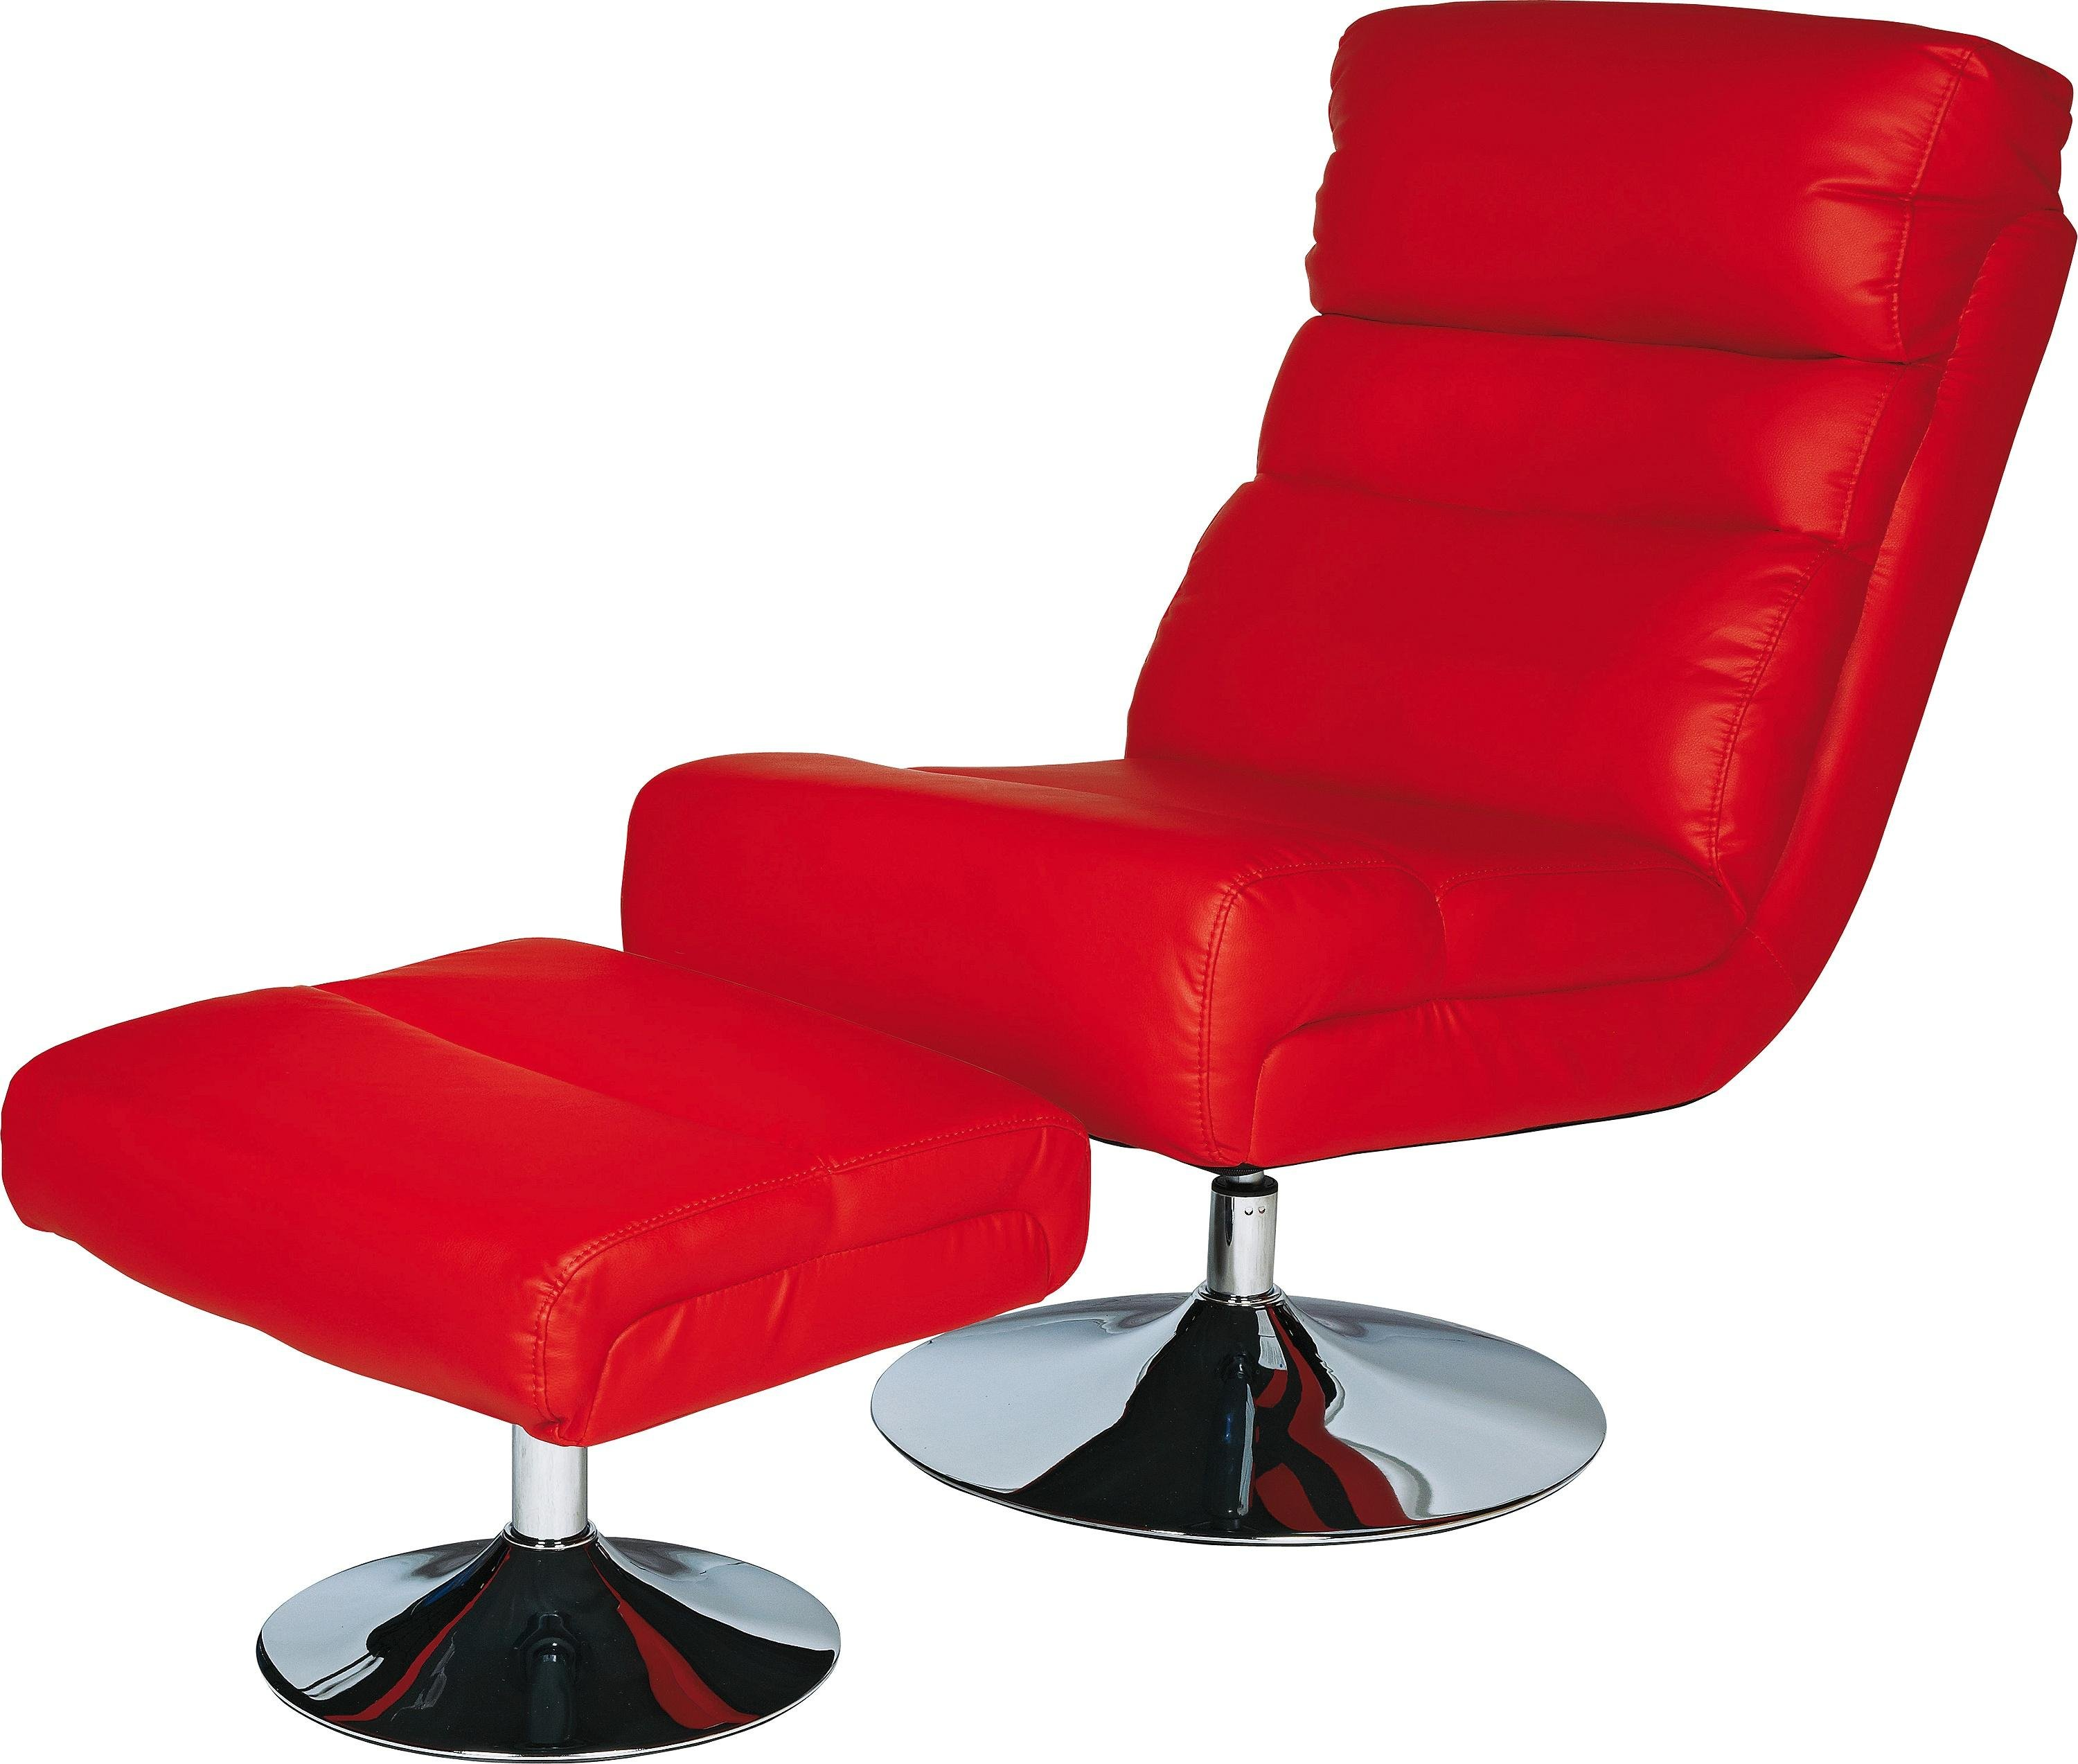 Red Leather Swivel Chair Buy Argos Home Costa Faux Leather Swivel Chair Footstool Red